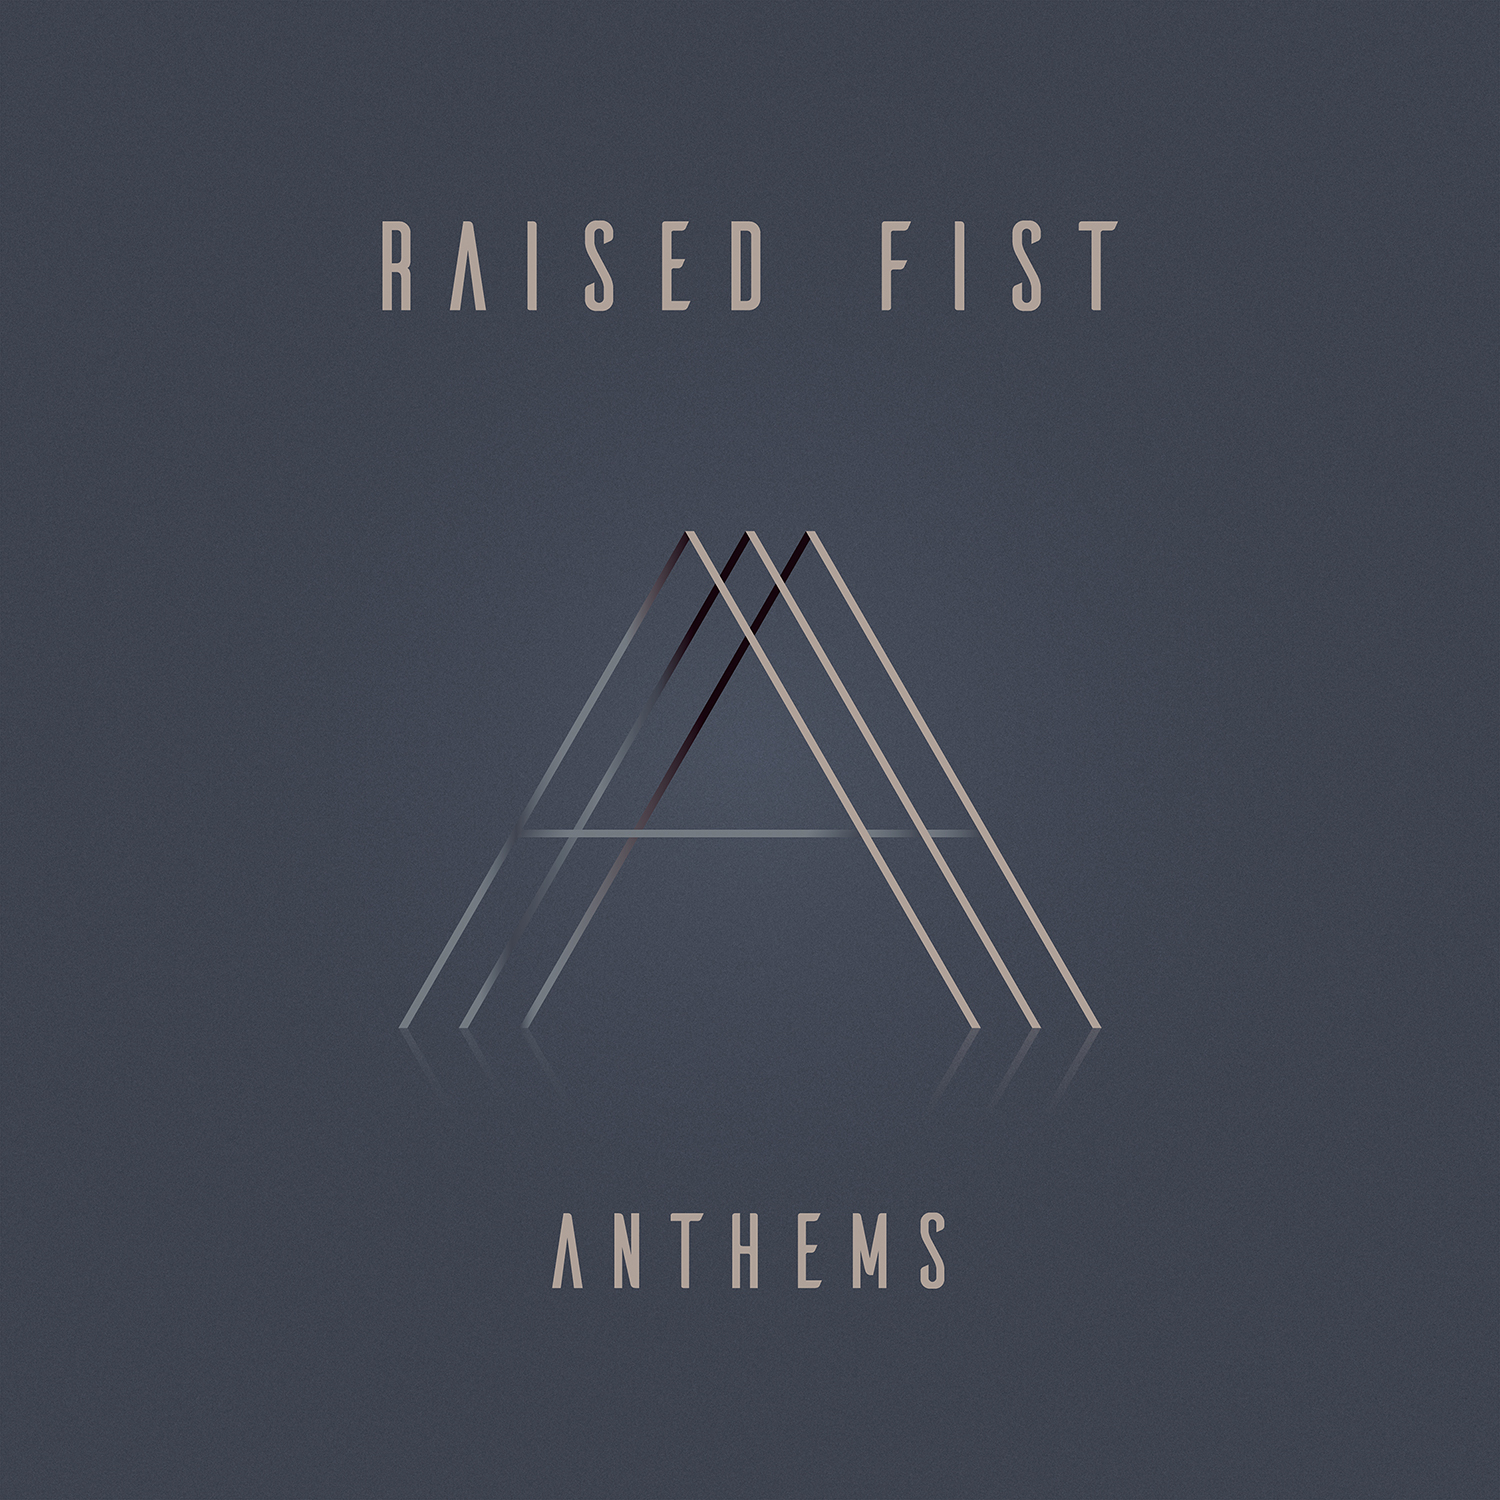 Raised Fist Anthems